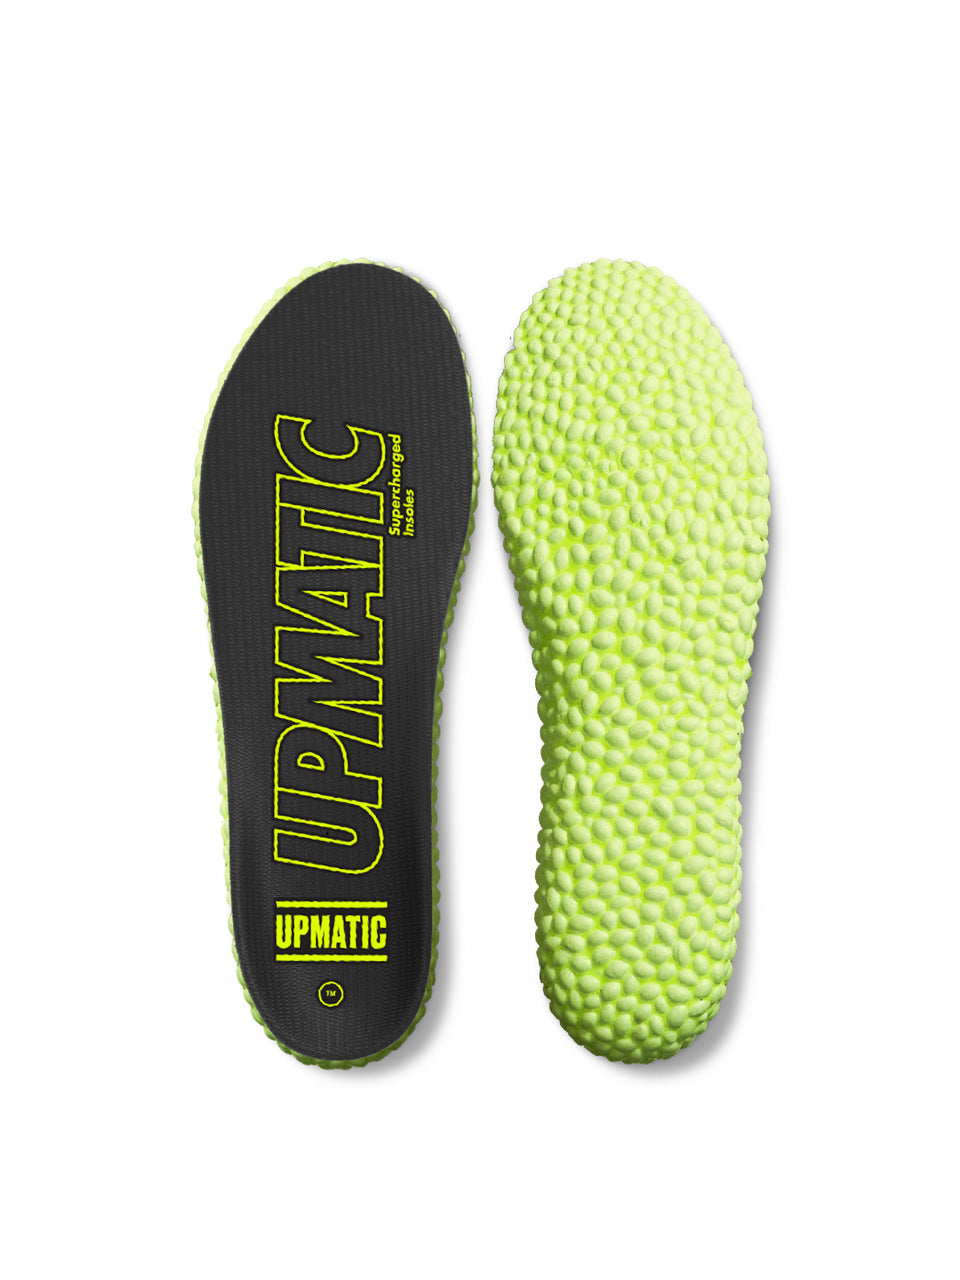 UPMATIC Original Slim Supercharged Insoles